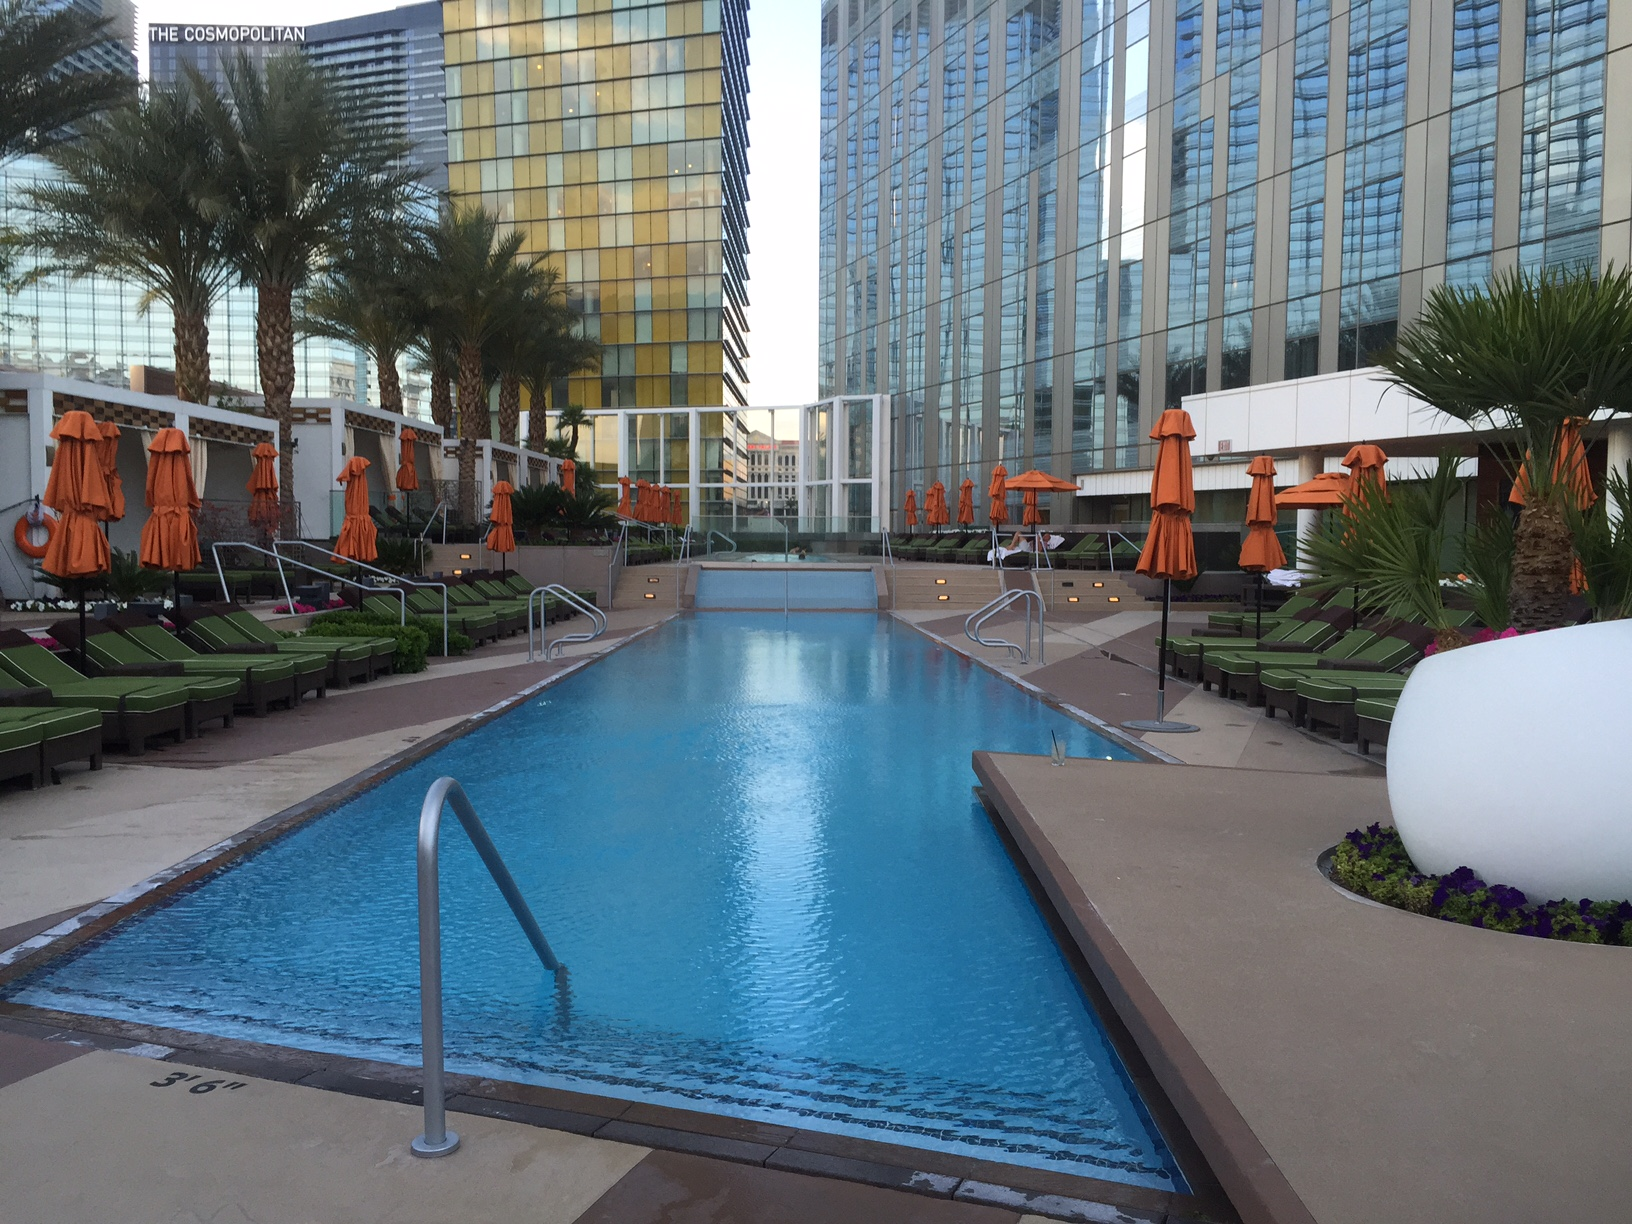 The Mandarin Oriental residence pool